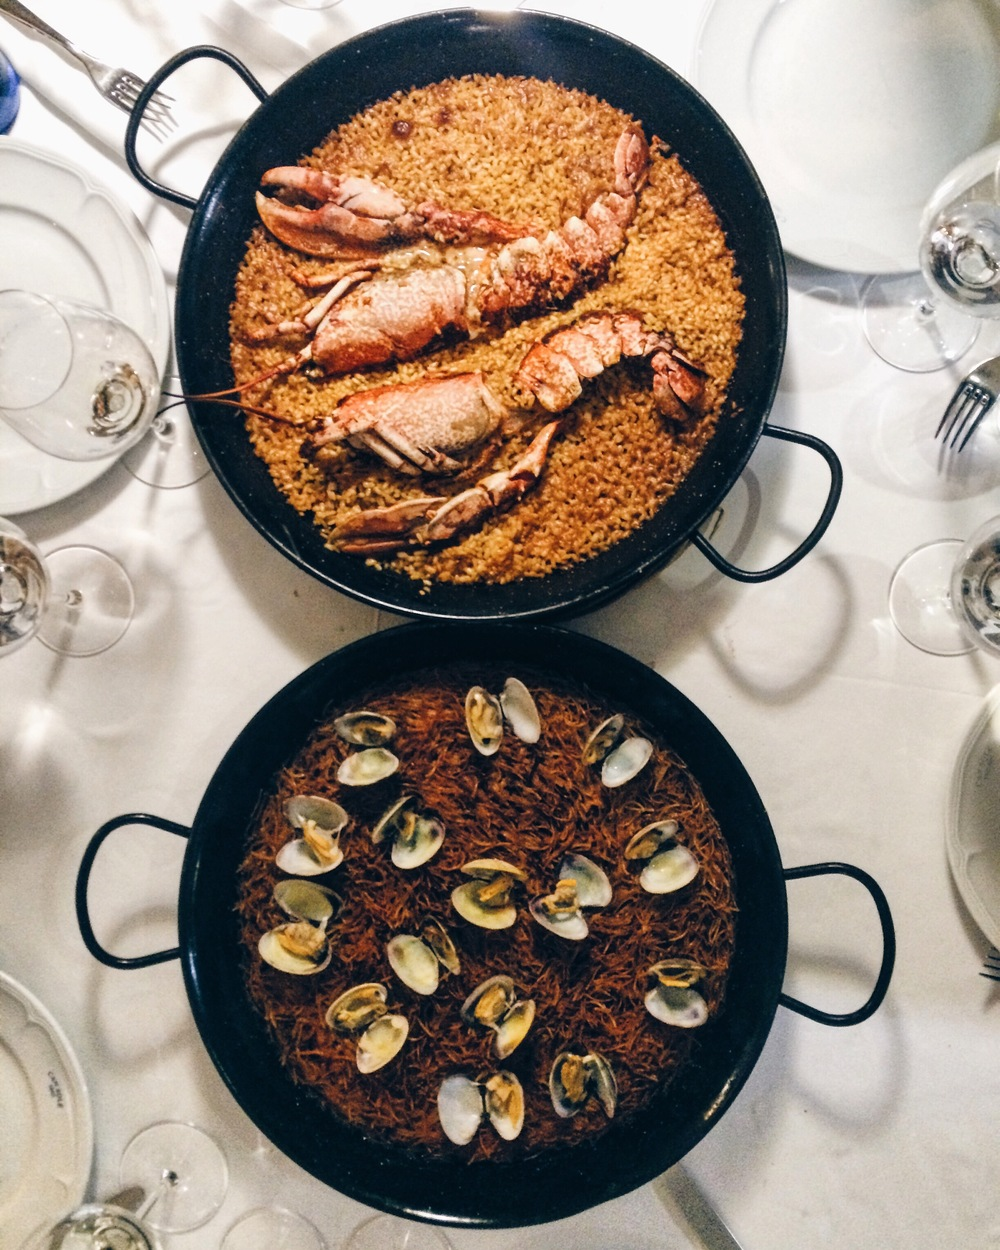 Lobster paella and fideua at Can Solé Barcelona